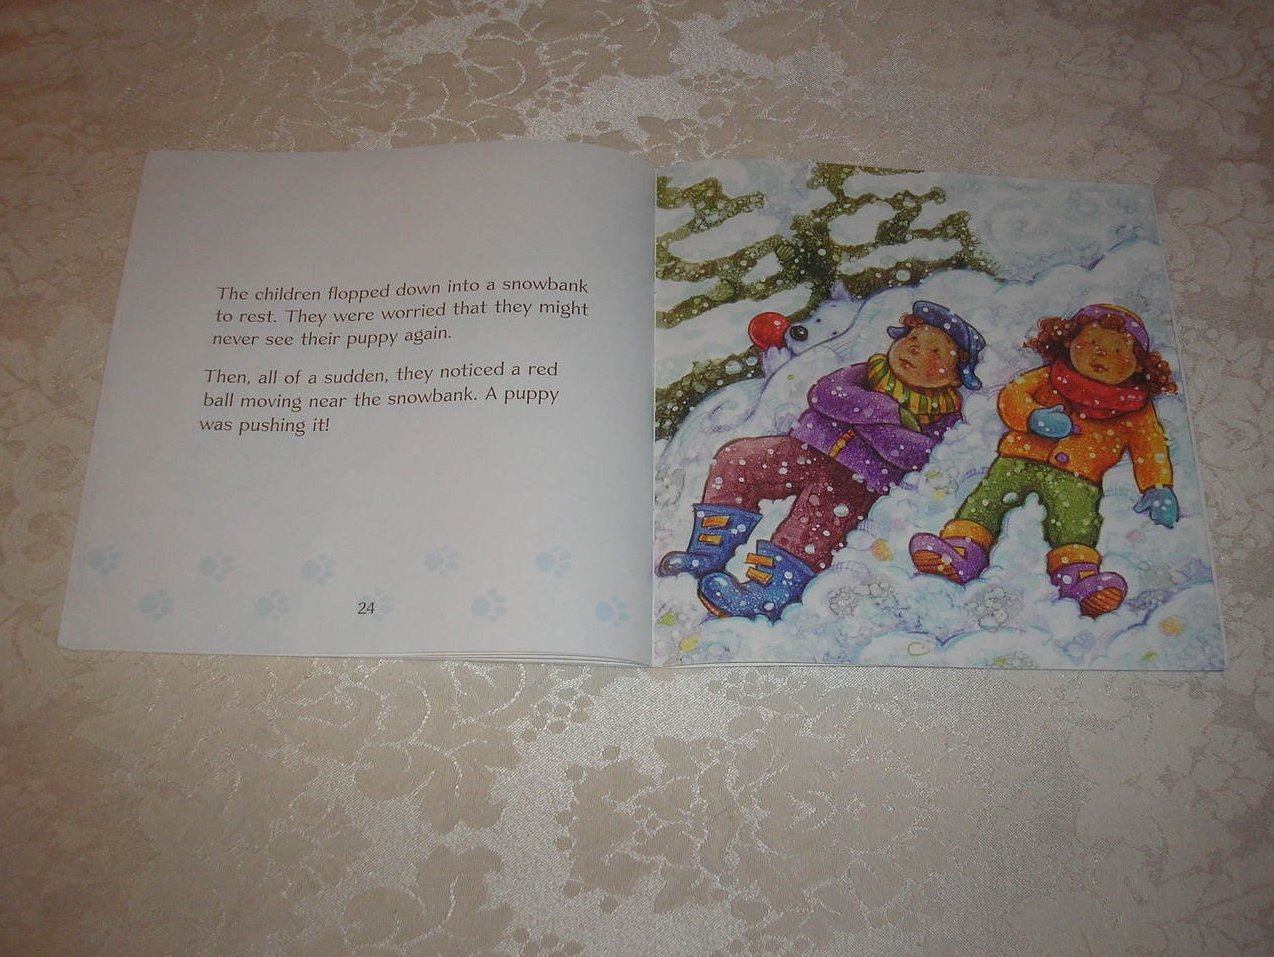 Image 4 of A Very Special Snowflake Don Hoffman Very Good Used Softcover